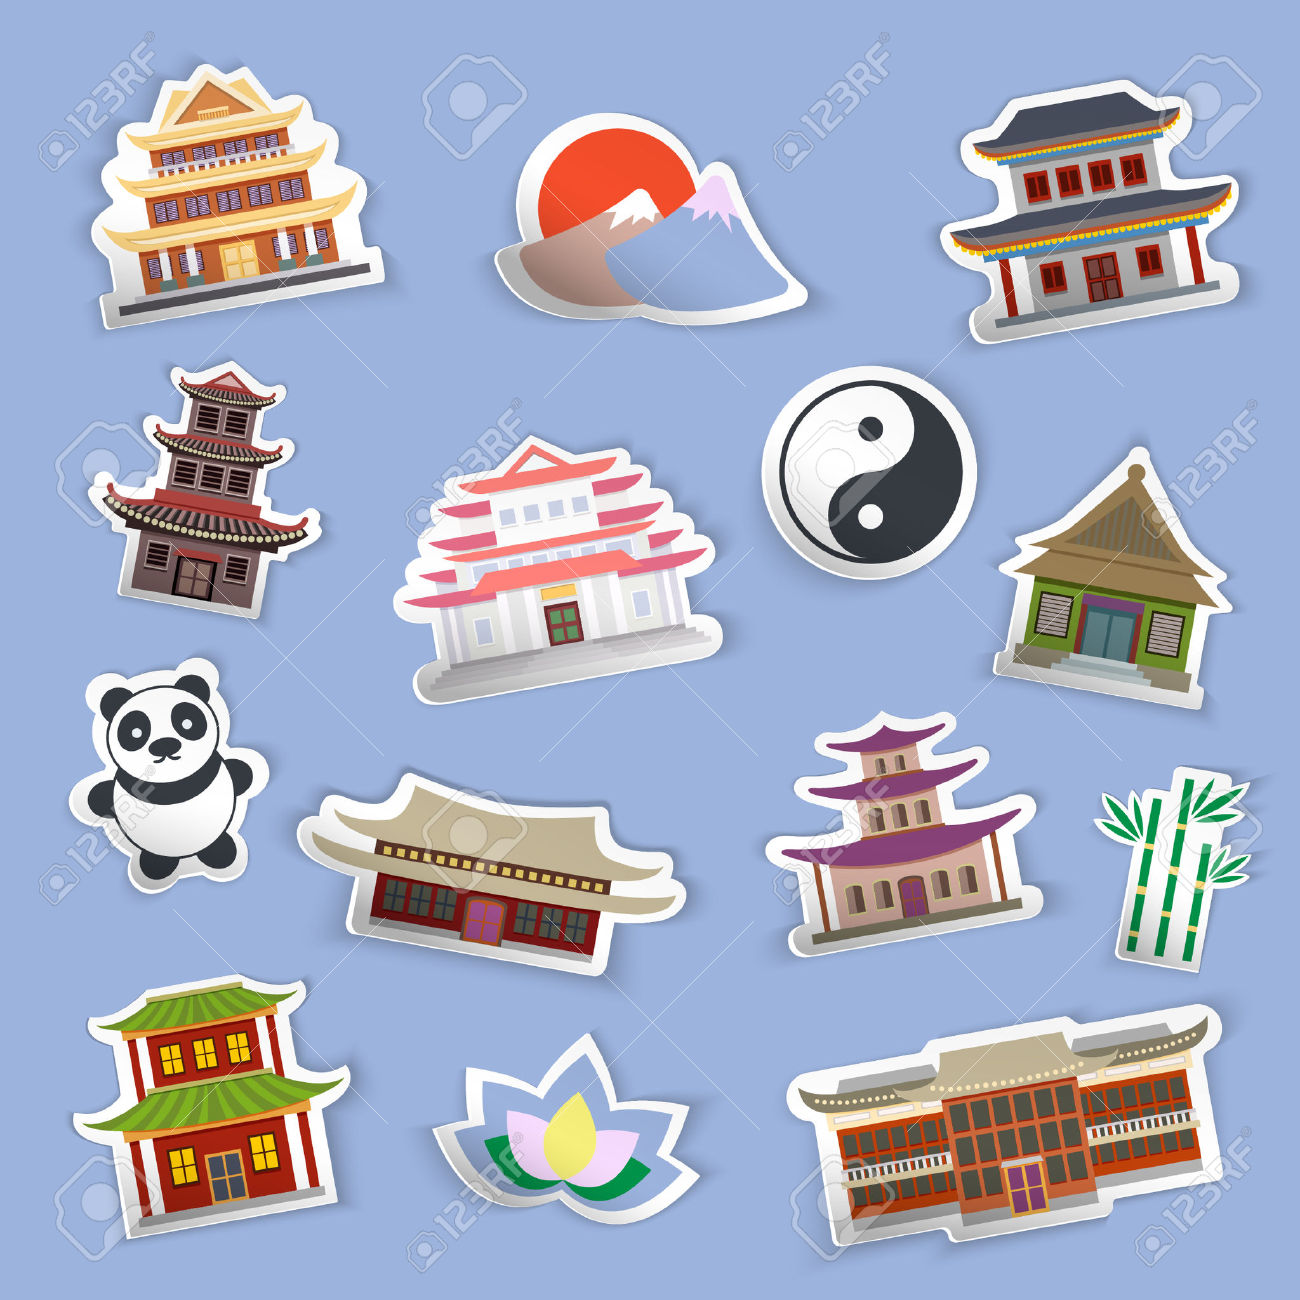 Chinese House And Traditional Culture Symbols Stickers Isolated.